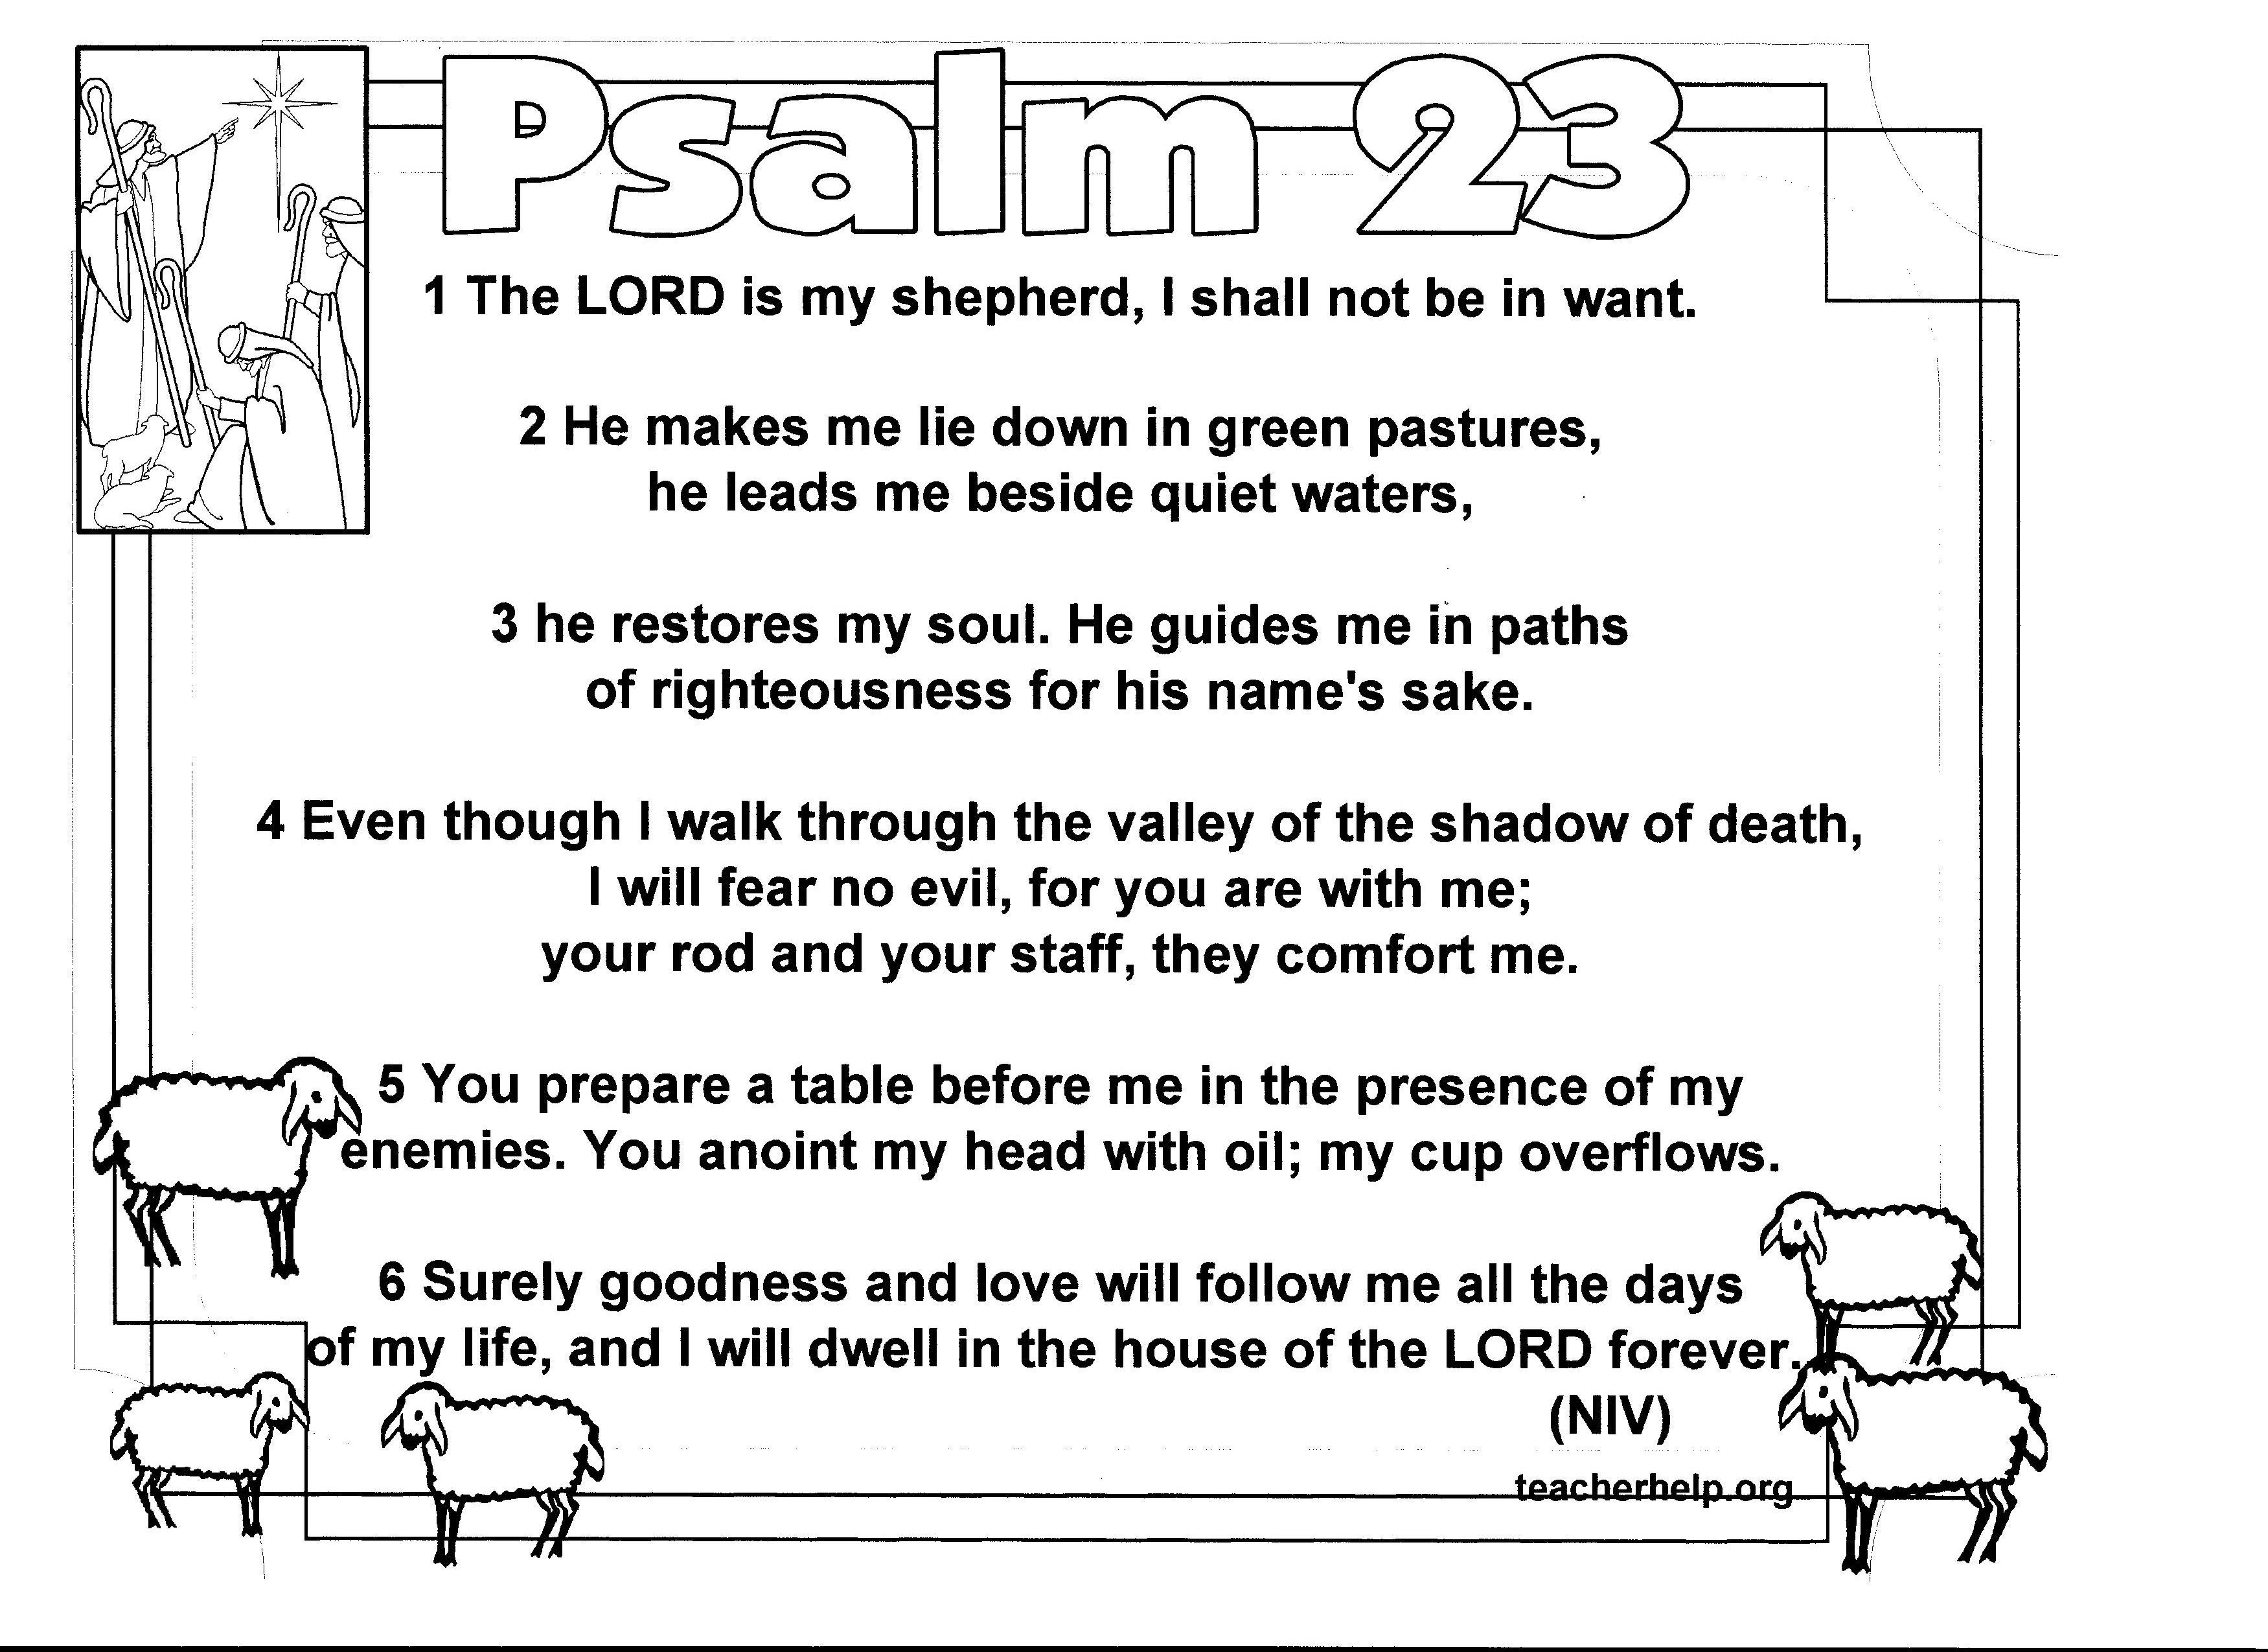 Psalm 23 Coloring Sheet Is Available In Niv Kjv And Nvi Espanol Go To Teacherhelp